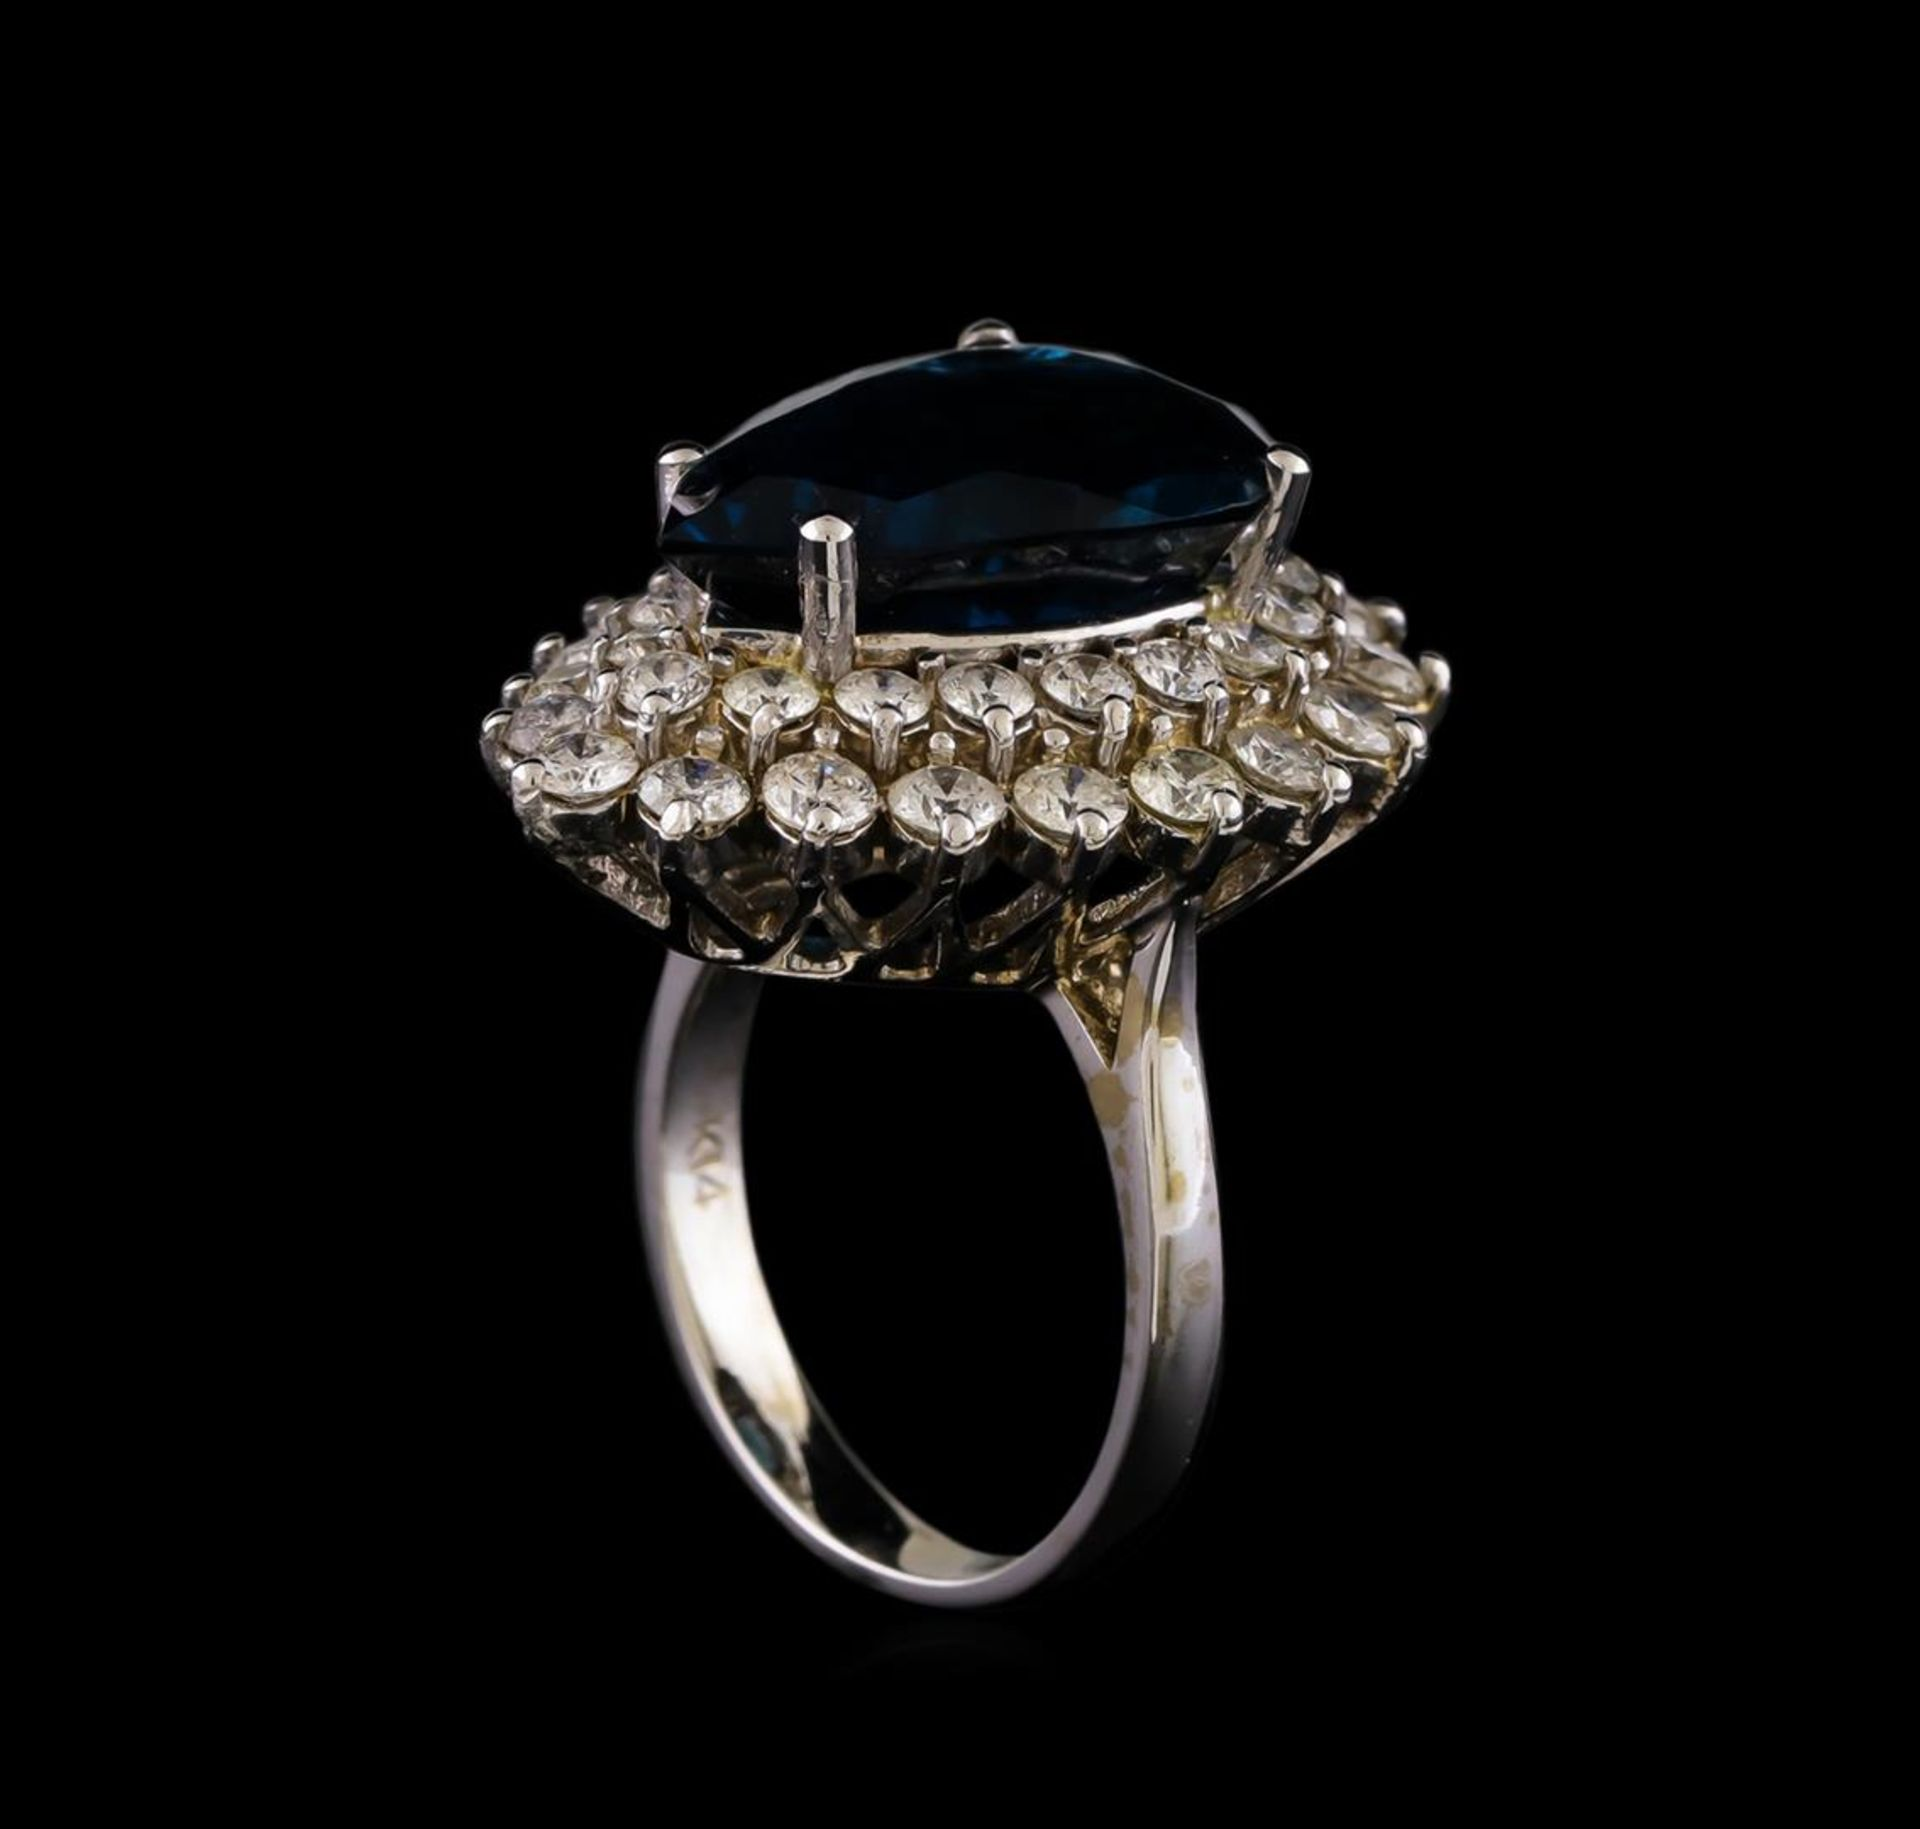 14KT White Gold 12.42 ctw Topaz and Diamond Ring - Image 4 of 5